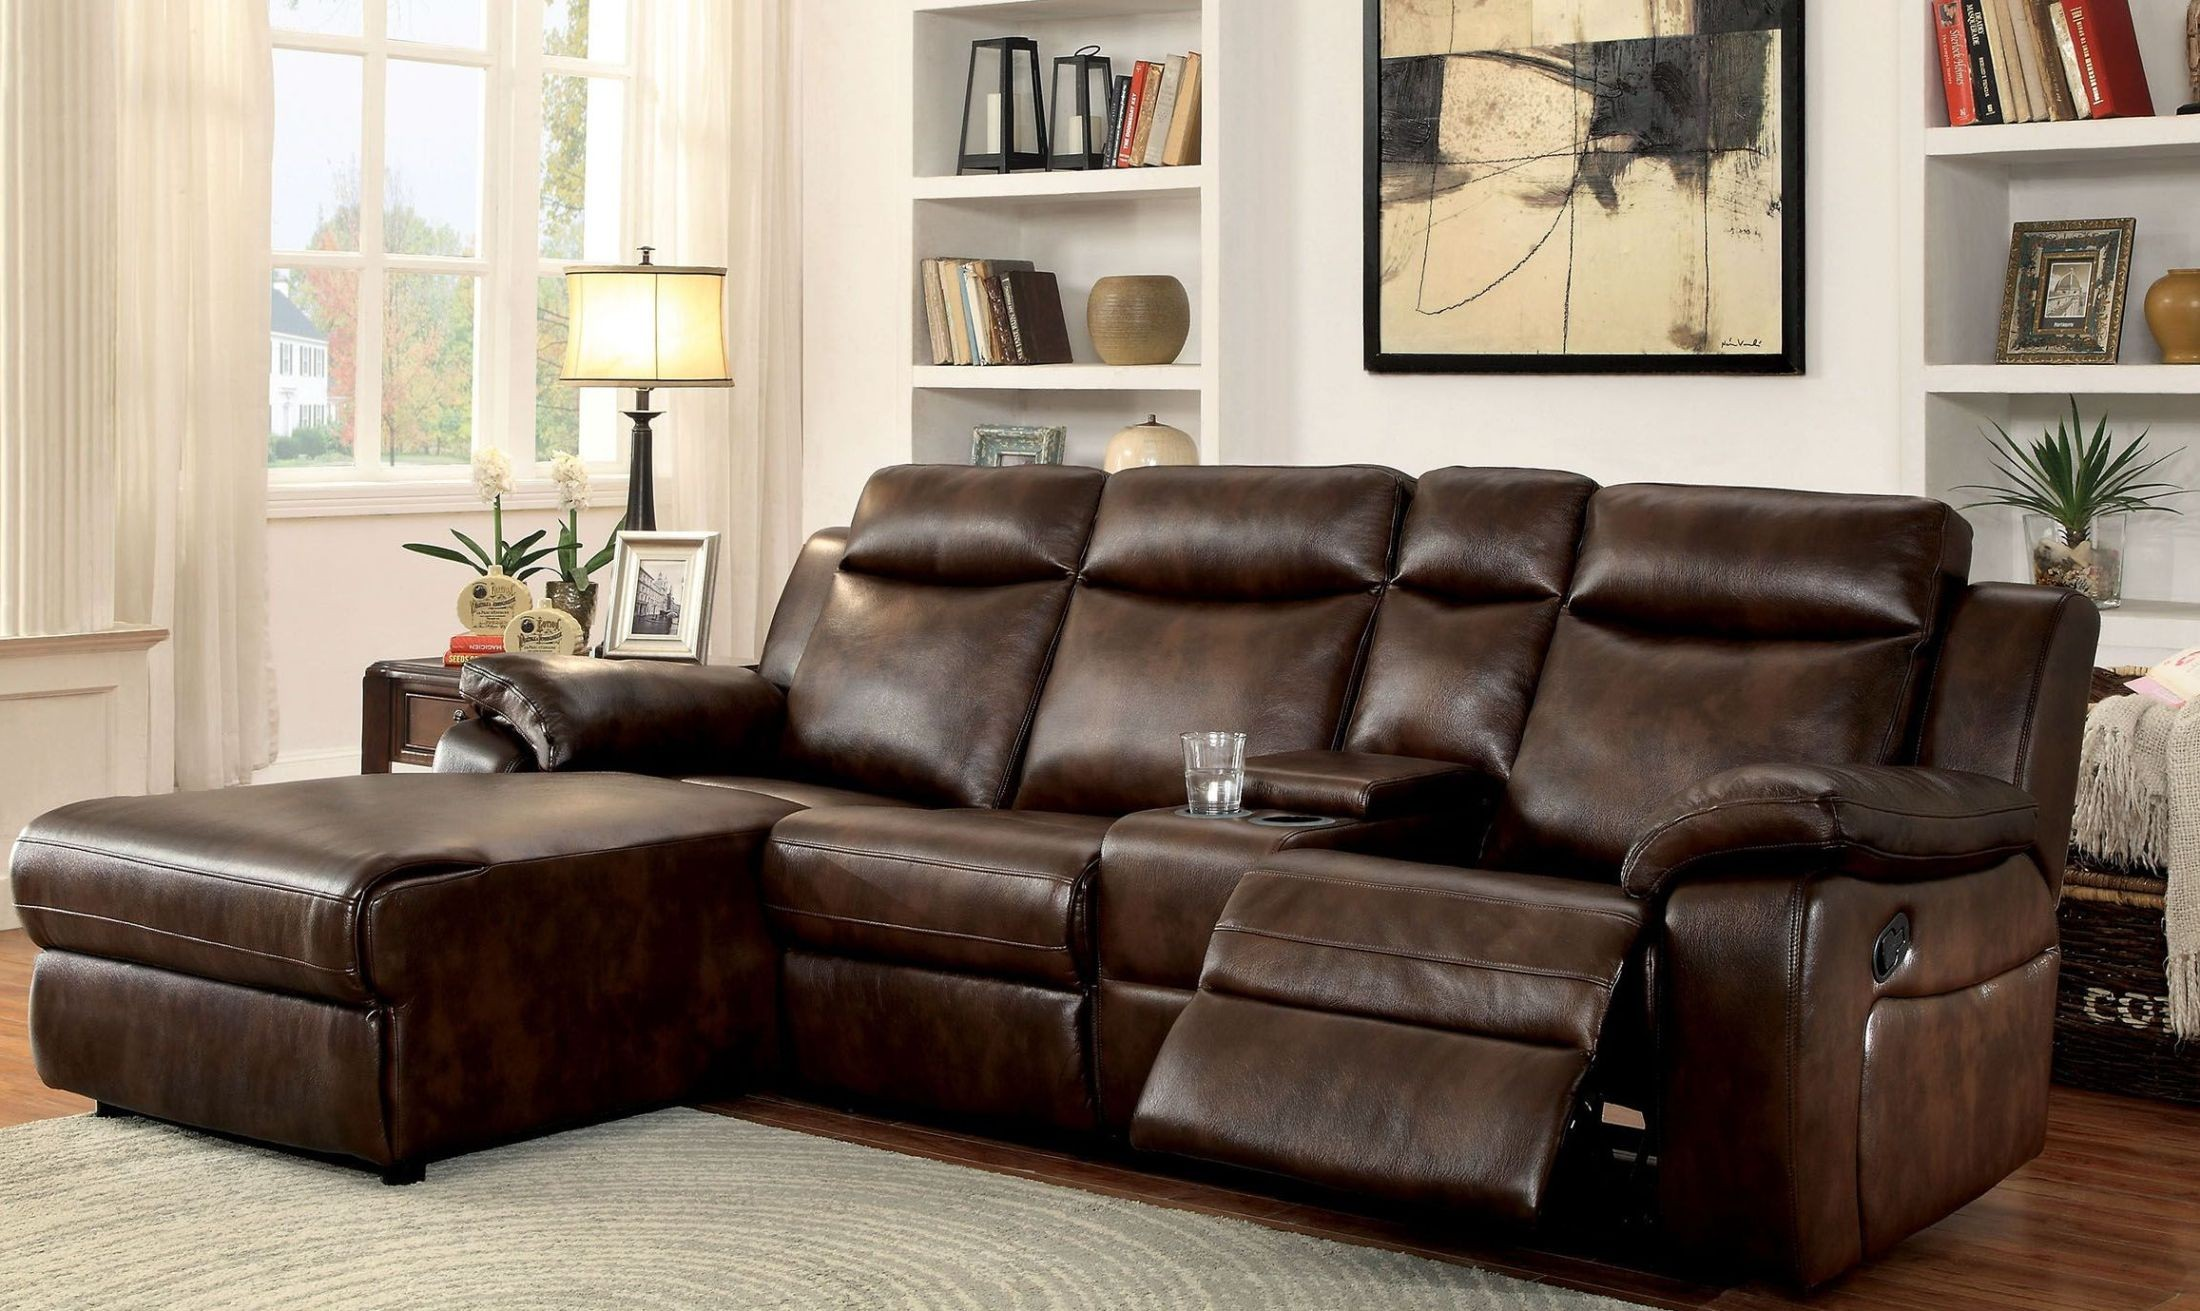 Hardy Brown LAF Reclining Sectional With Console from Furniture of